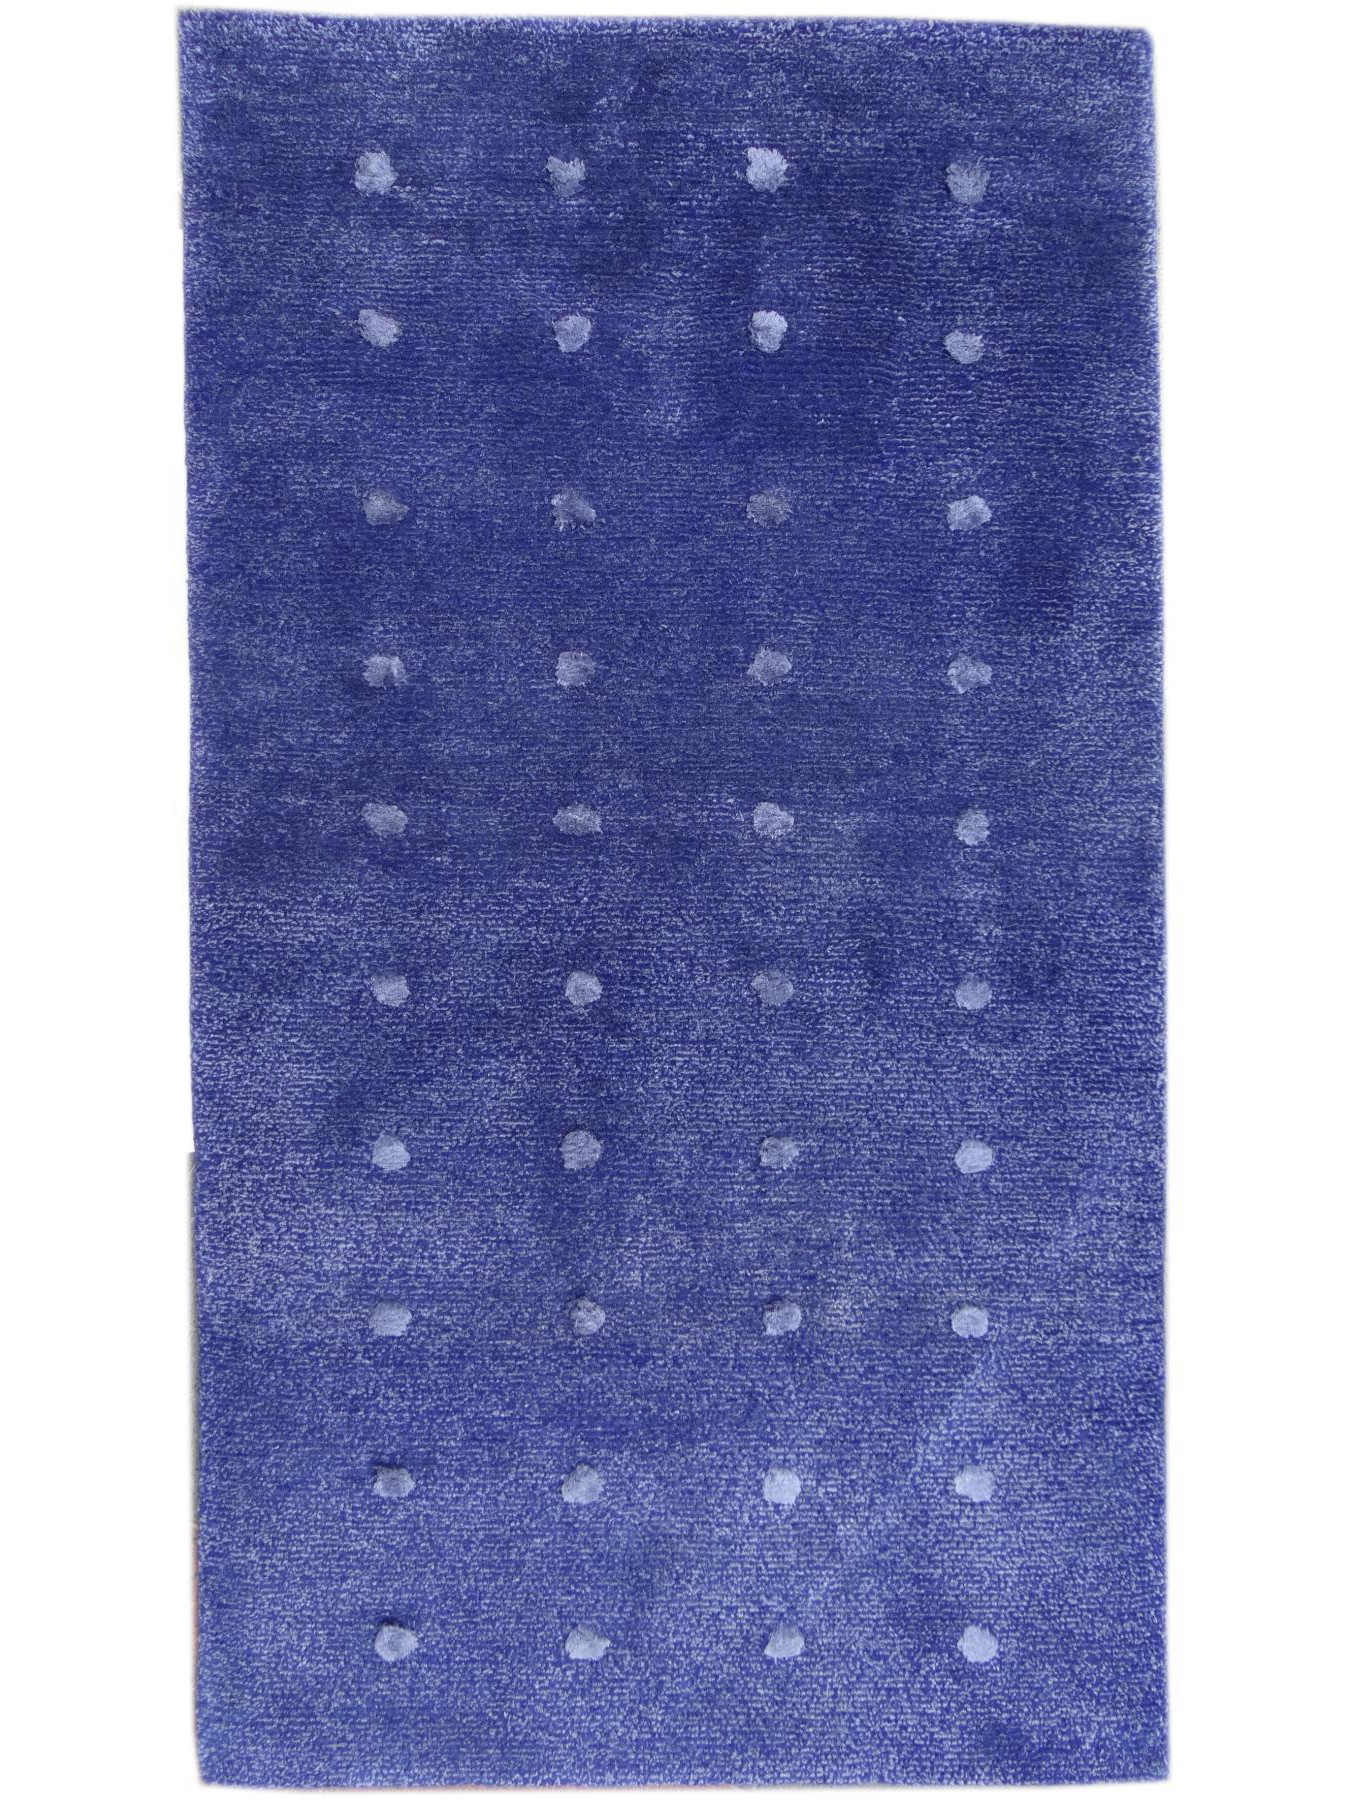 Unicoloured carpets - DUCATS - S3303 BLUE